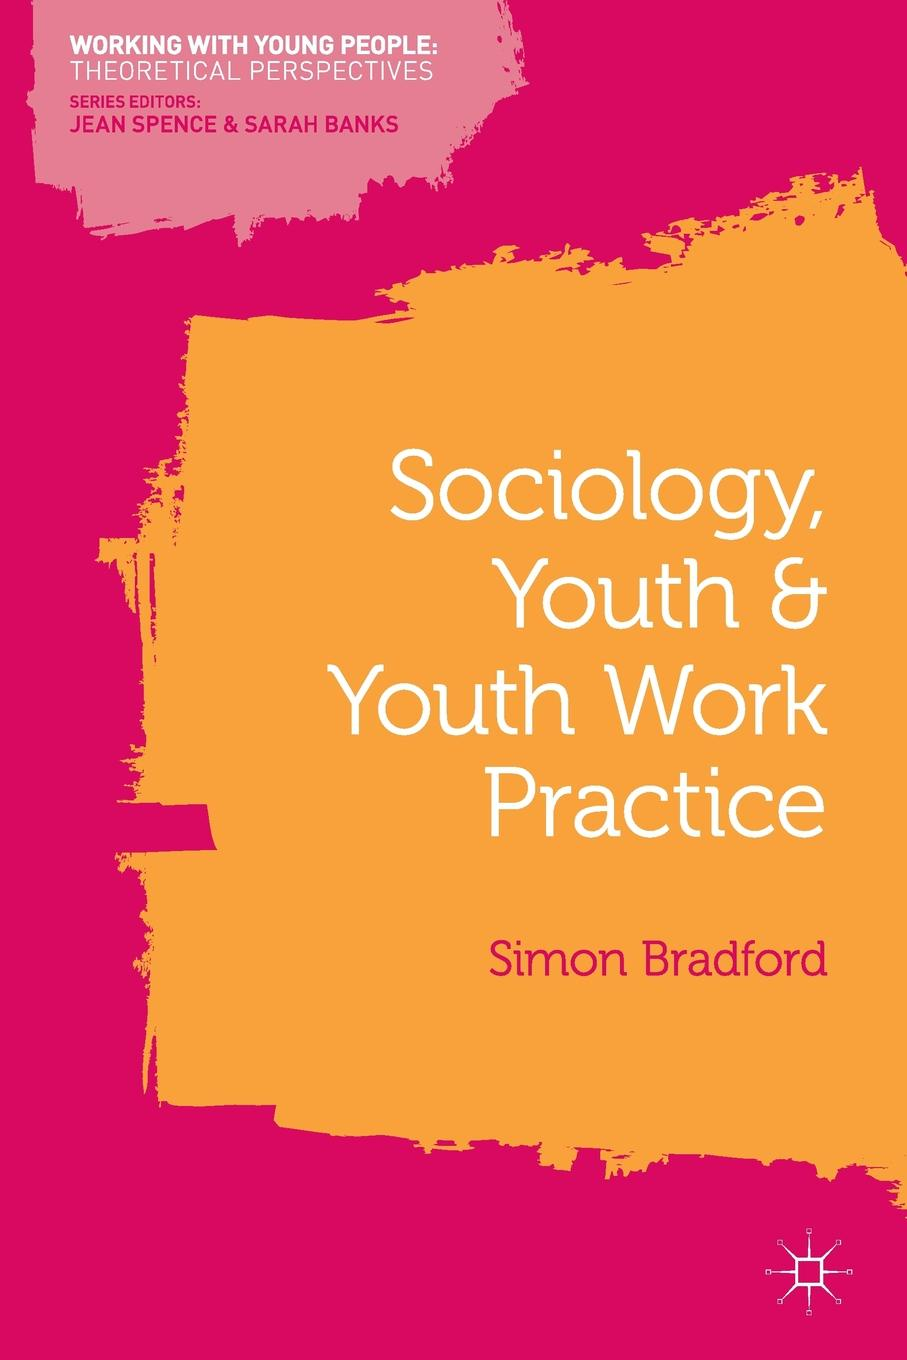 Simon Bradford Sociology, Youth and Youth Work Practice